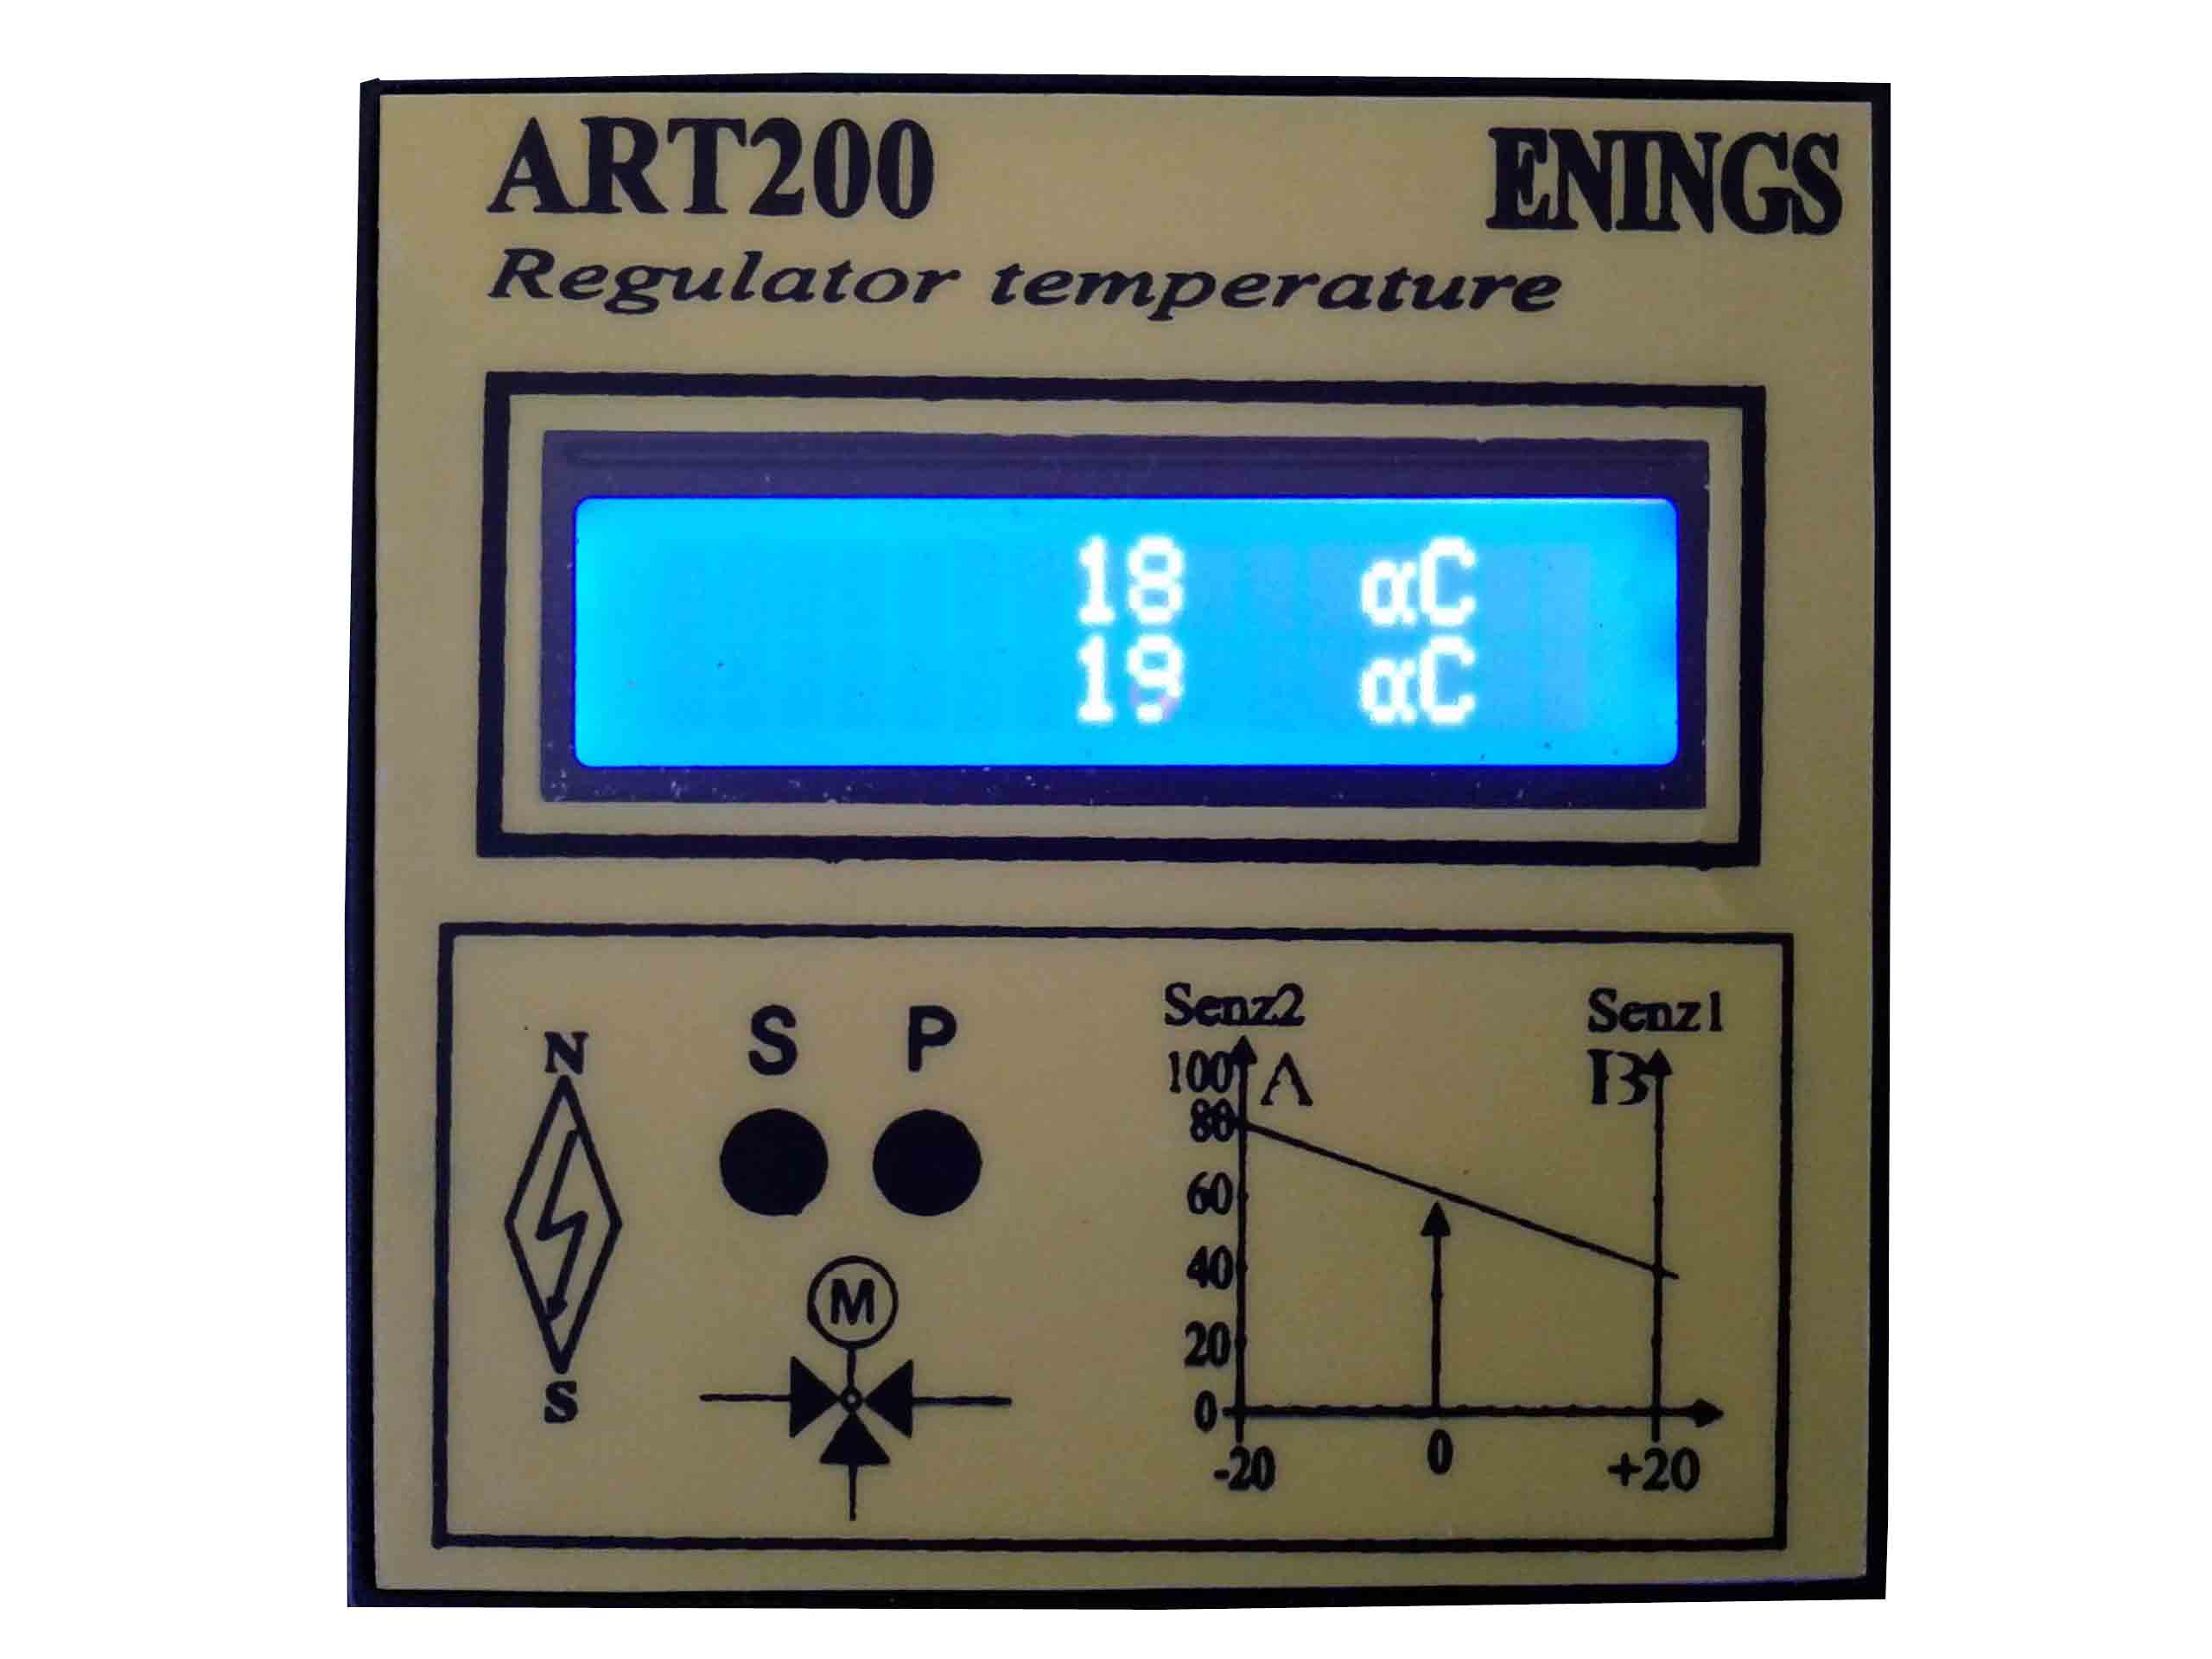 ART200 regulator elektromotornog ventila